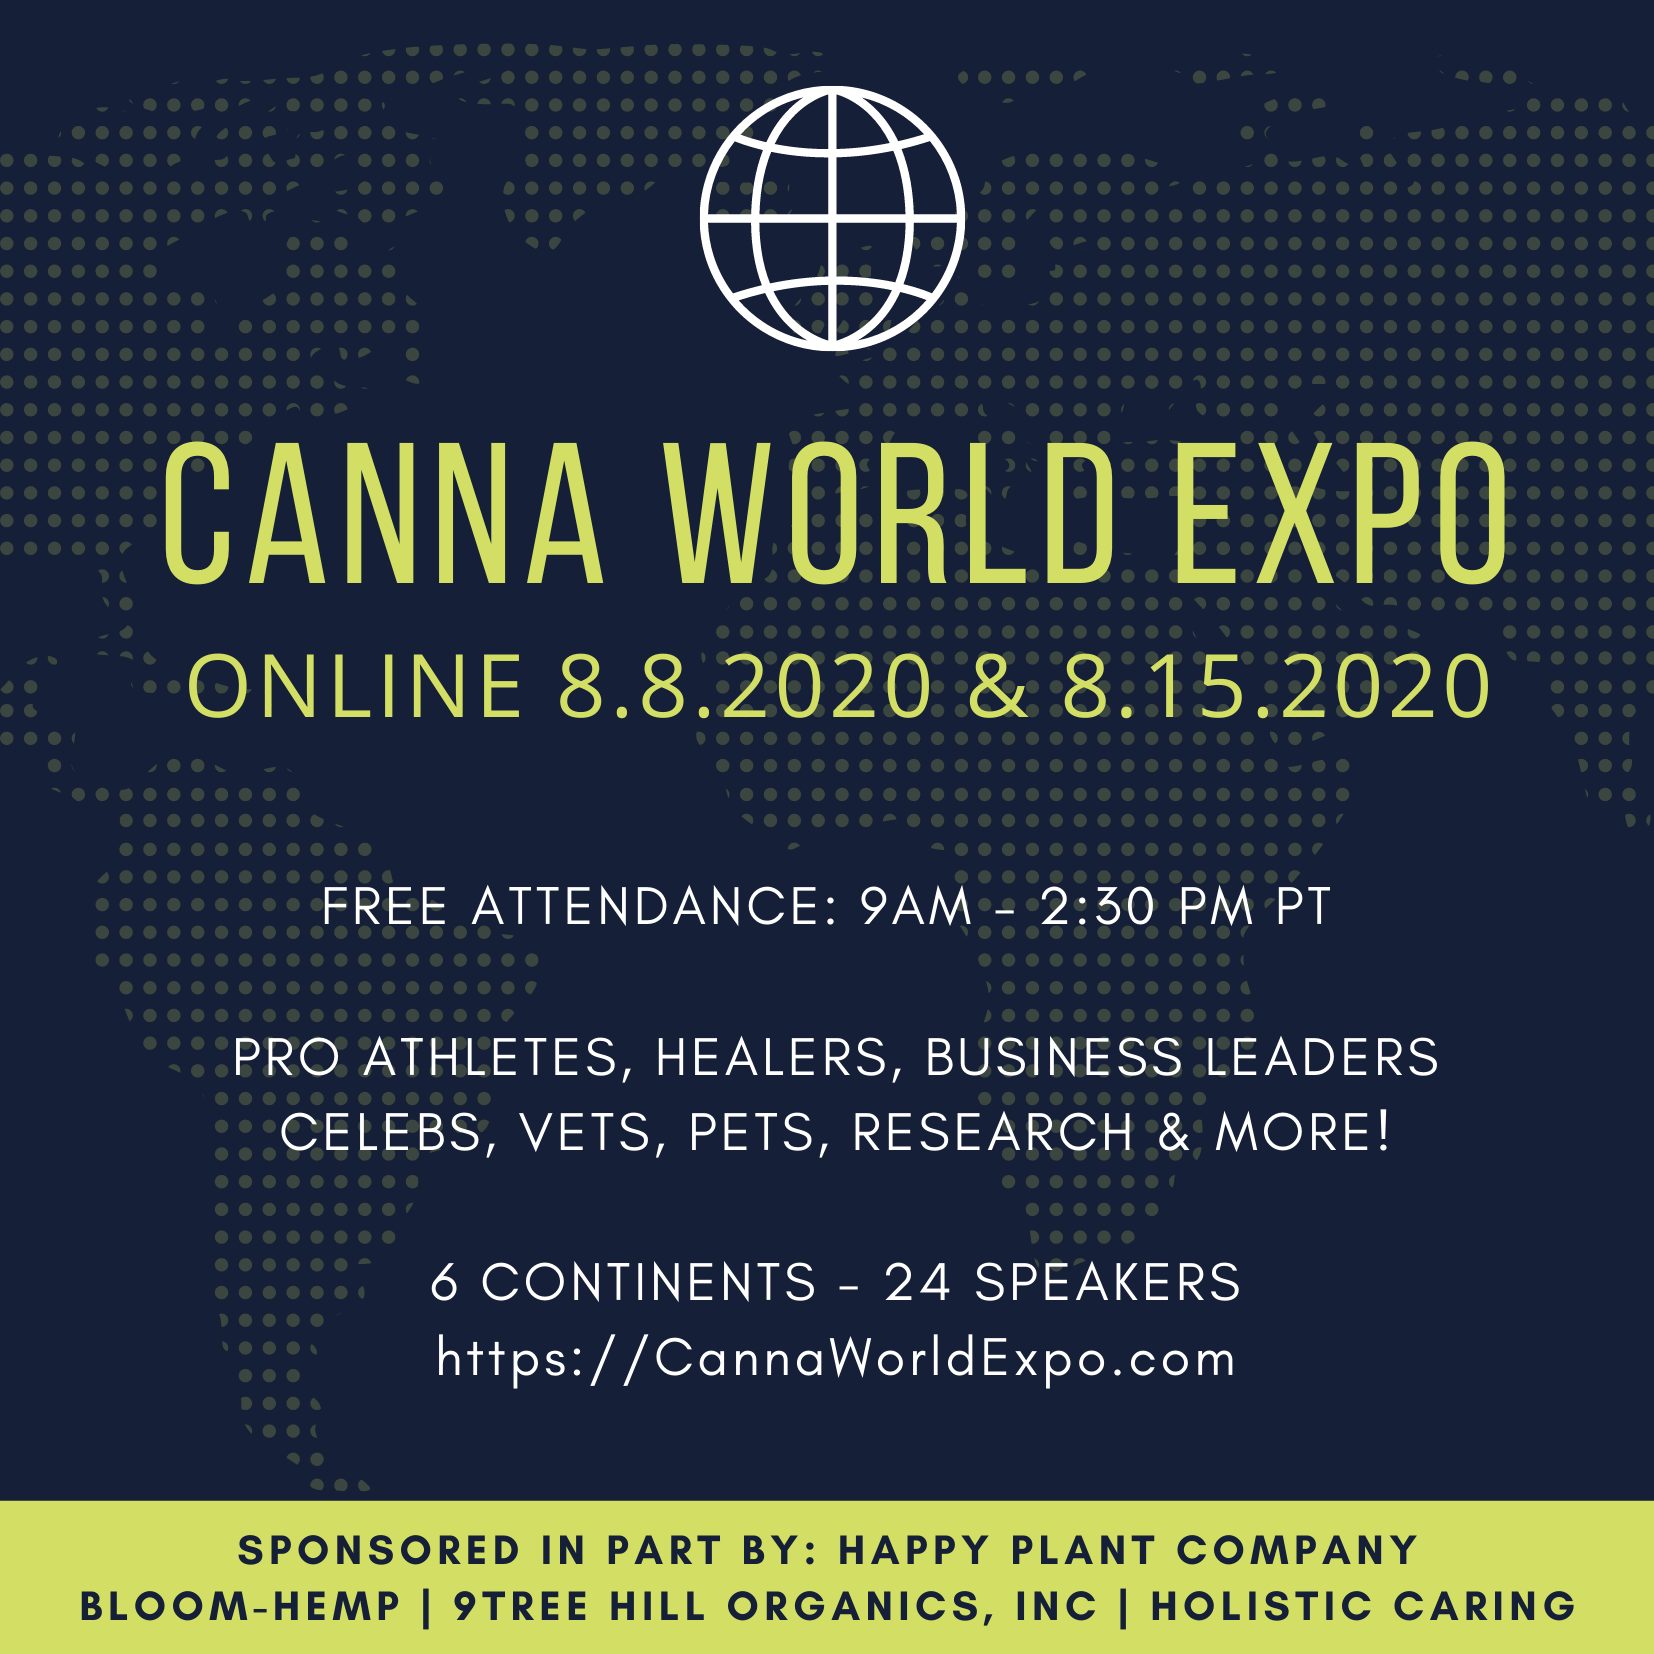 CANNA WORLD EXPO AUGUST 15th ONLINE SYMPOSIUM